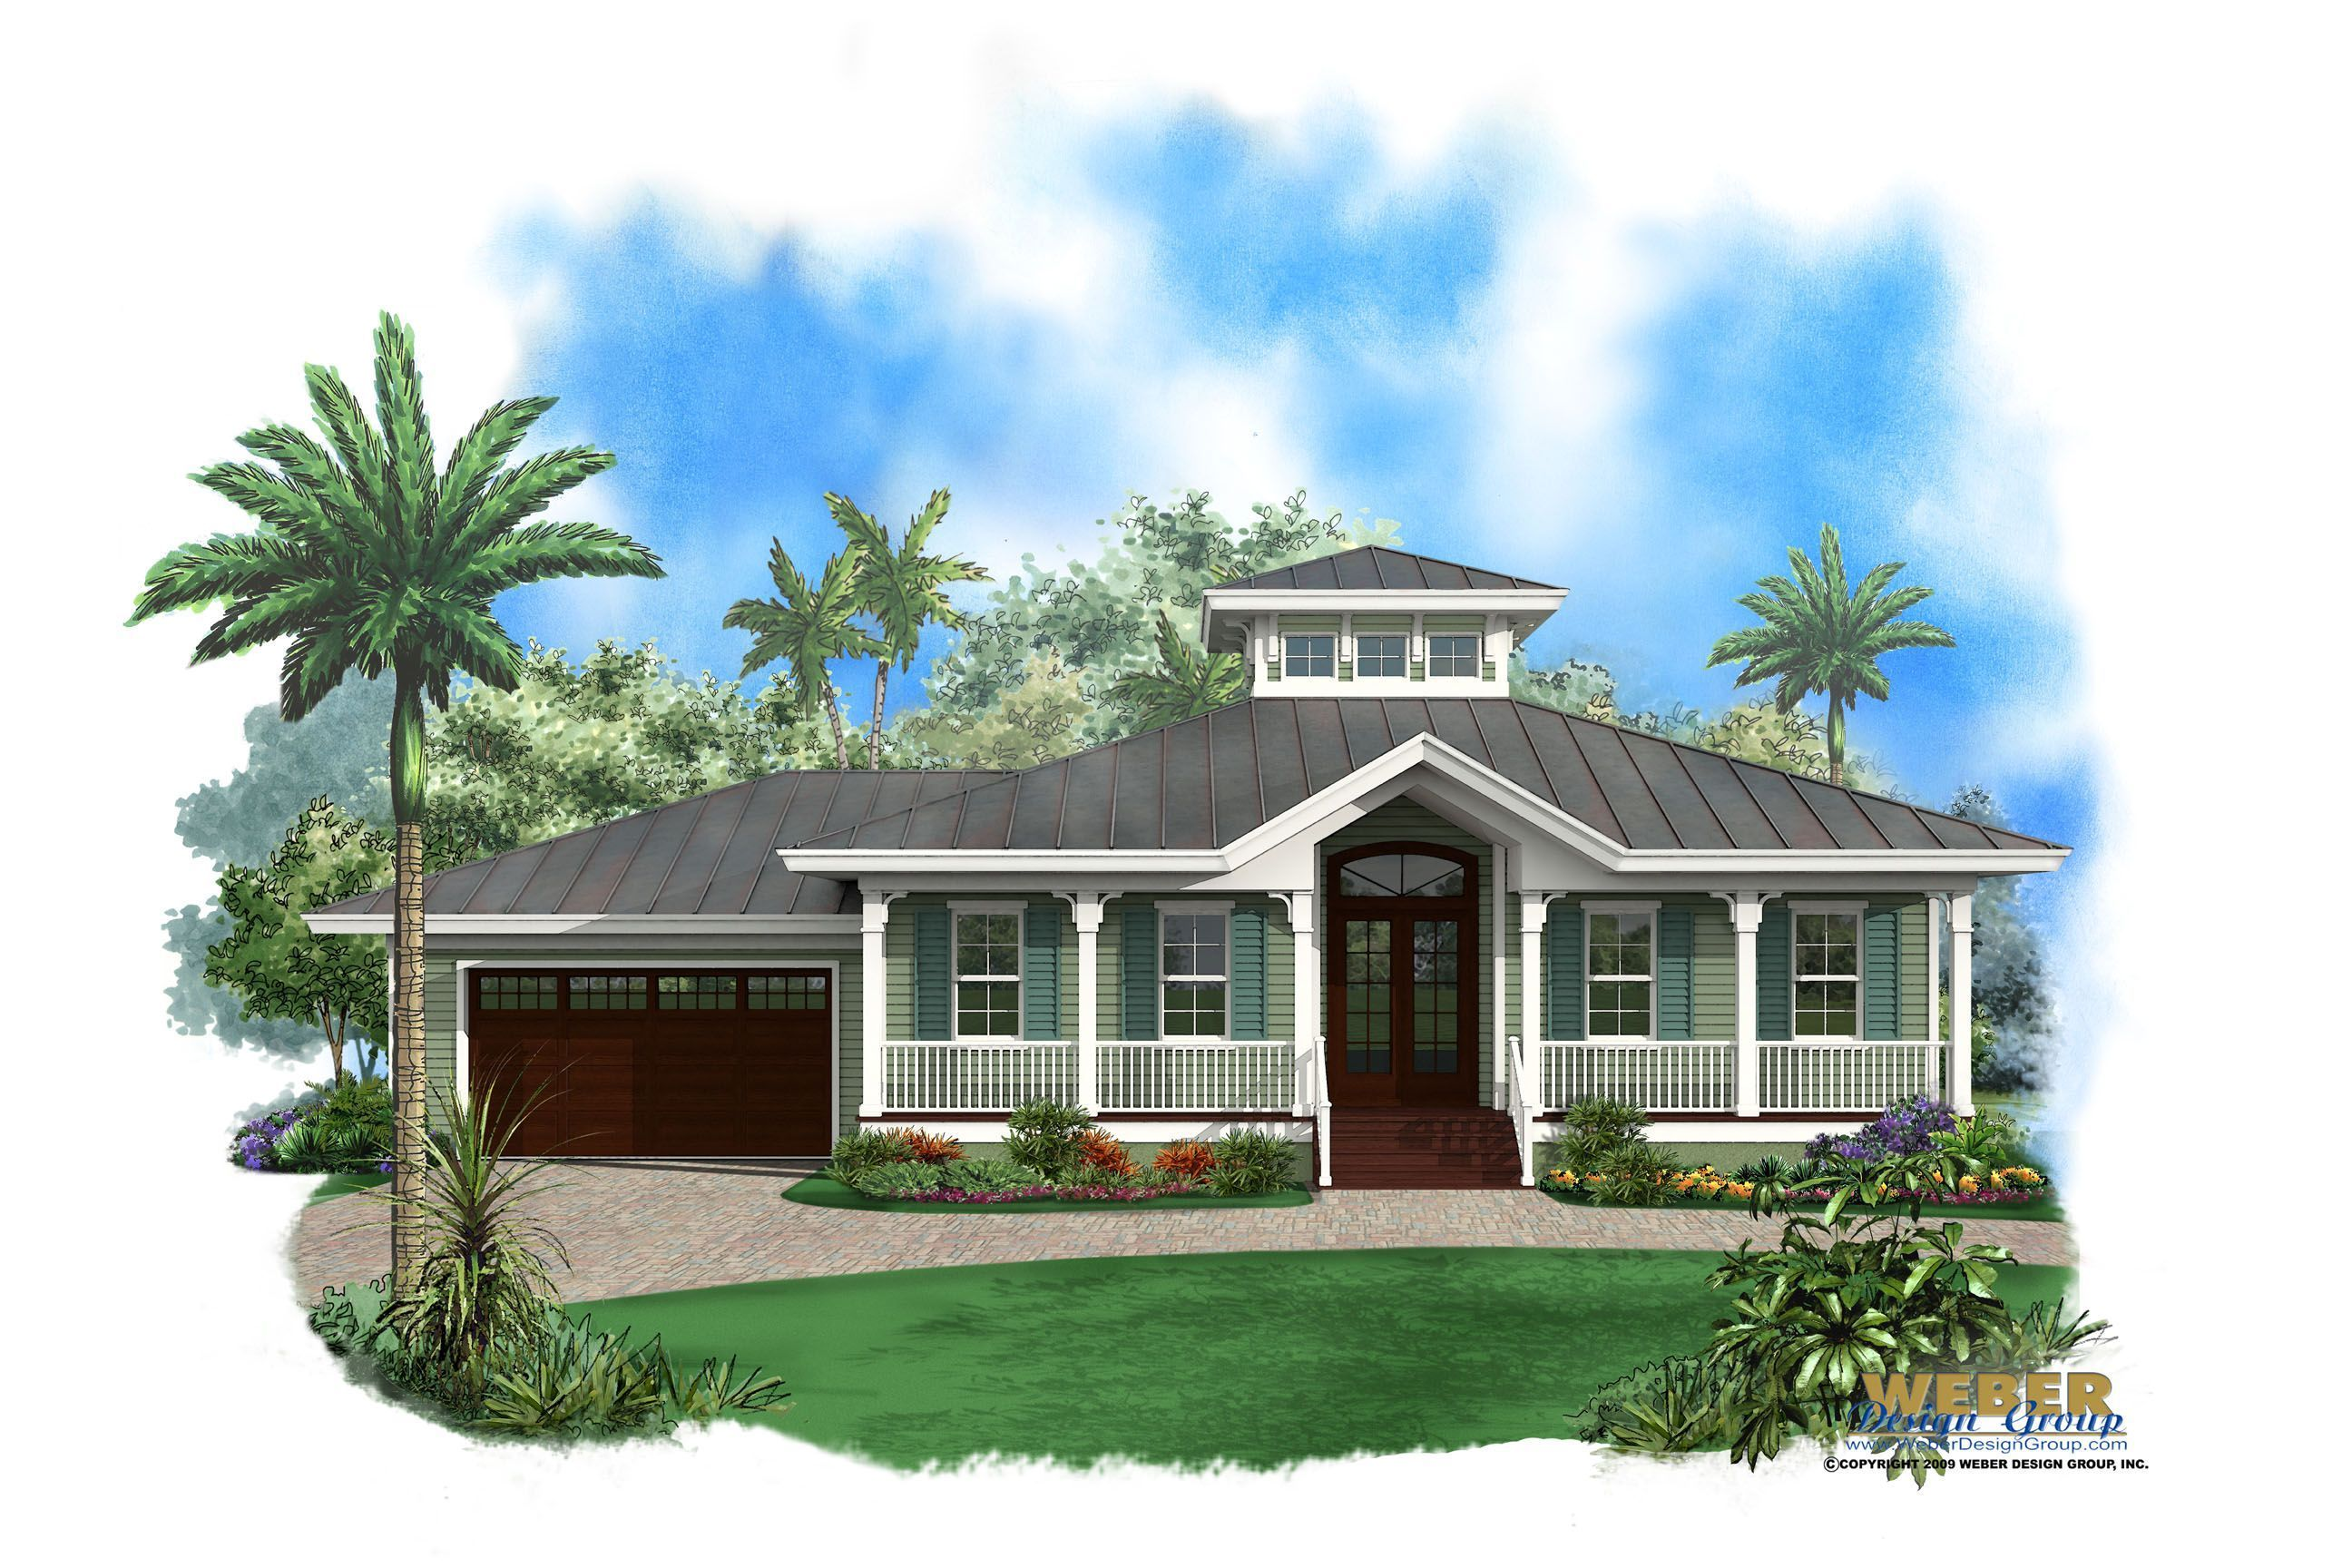 Ambergris Cay Home Plan 3 Bed 2 Bath Olde Florida Cracker Style House Covered Front Porch For Co Coastal House Plans Florida House Plans Cottage House Plans